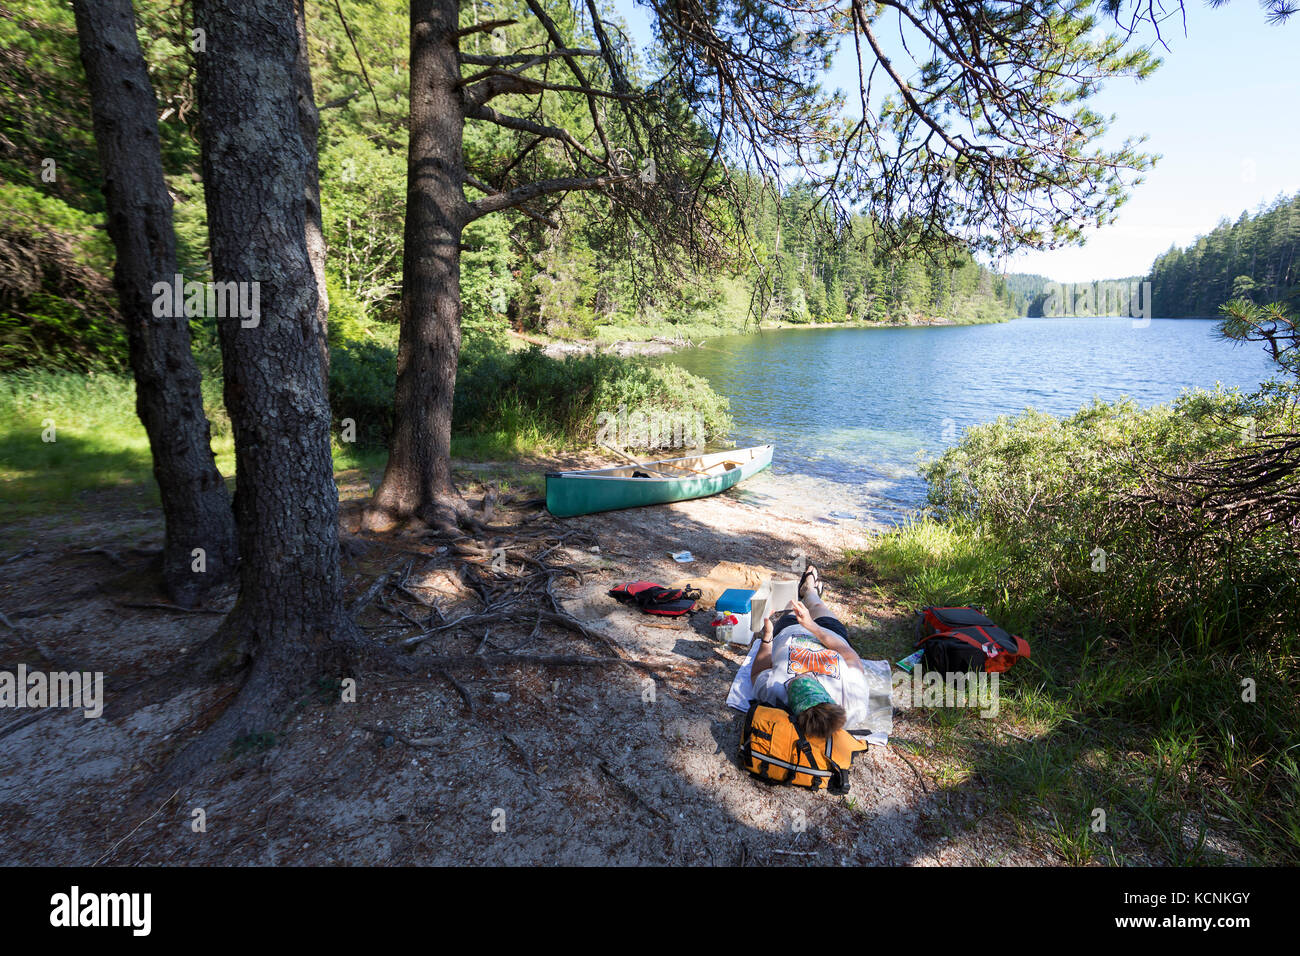 Relaxing while Canoeing on Village Bay Lakes on Quadra Island, British Columbia, Canada. - Stock Image